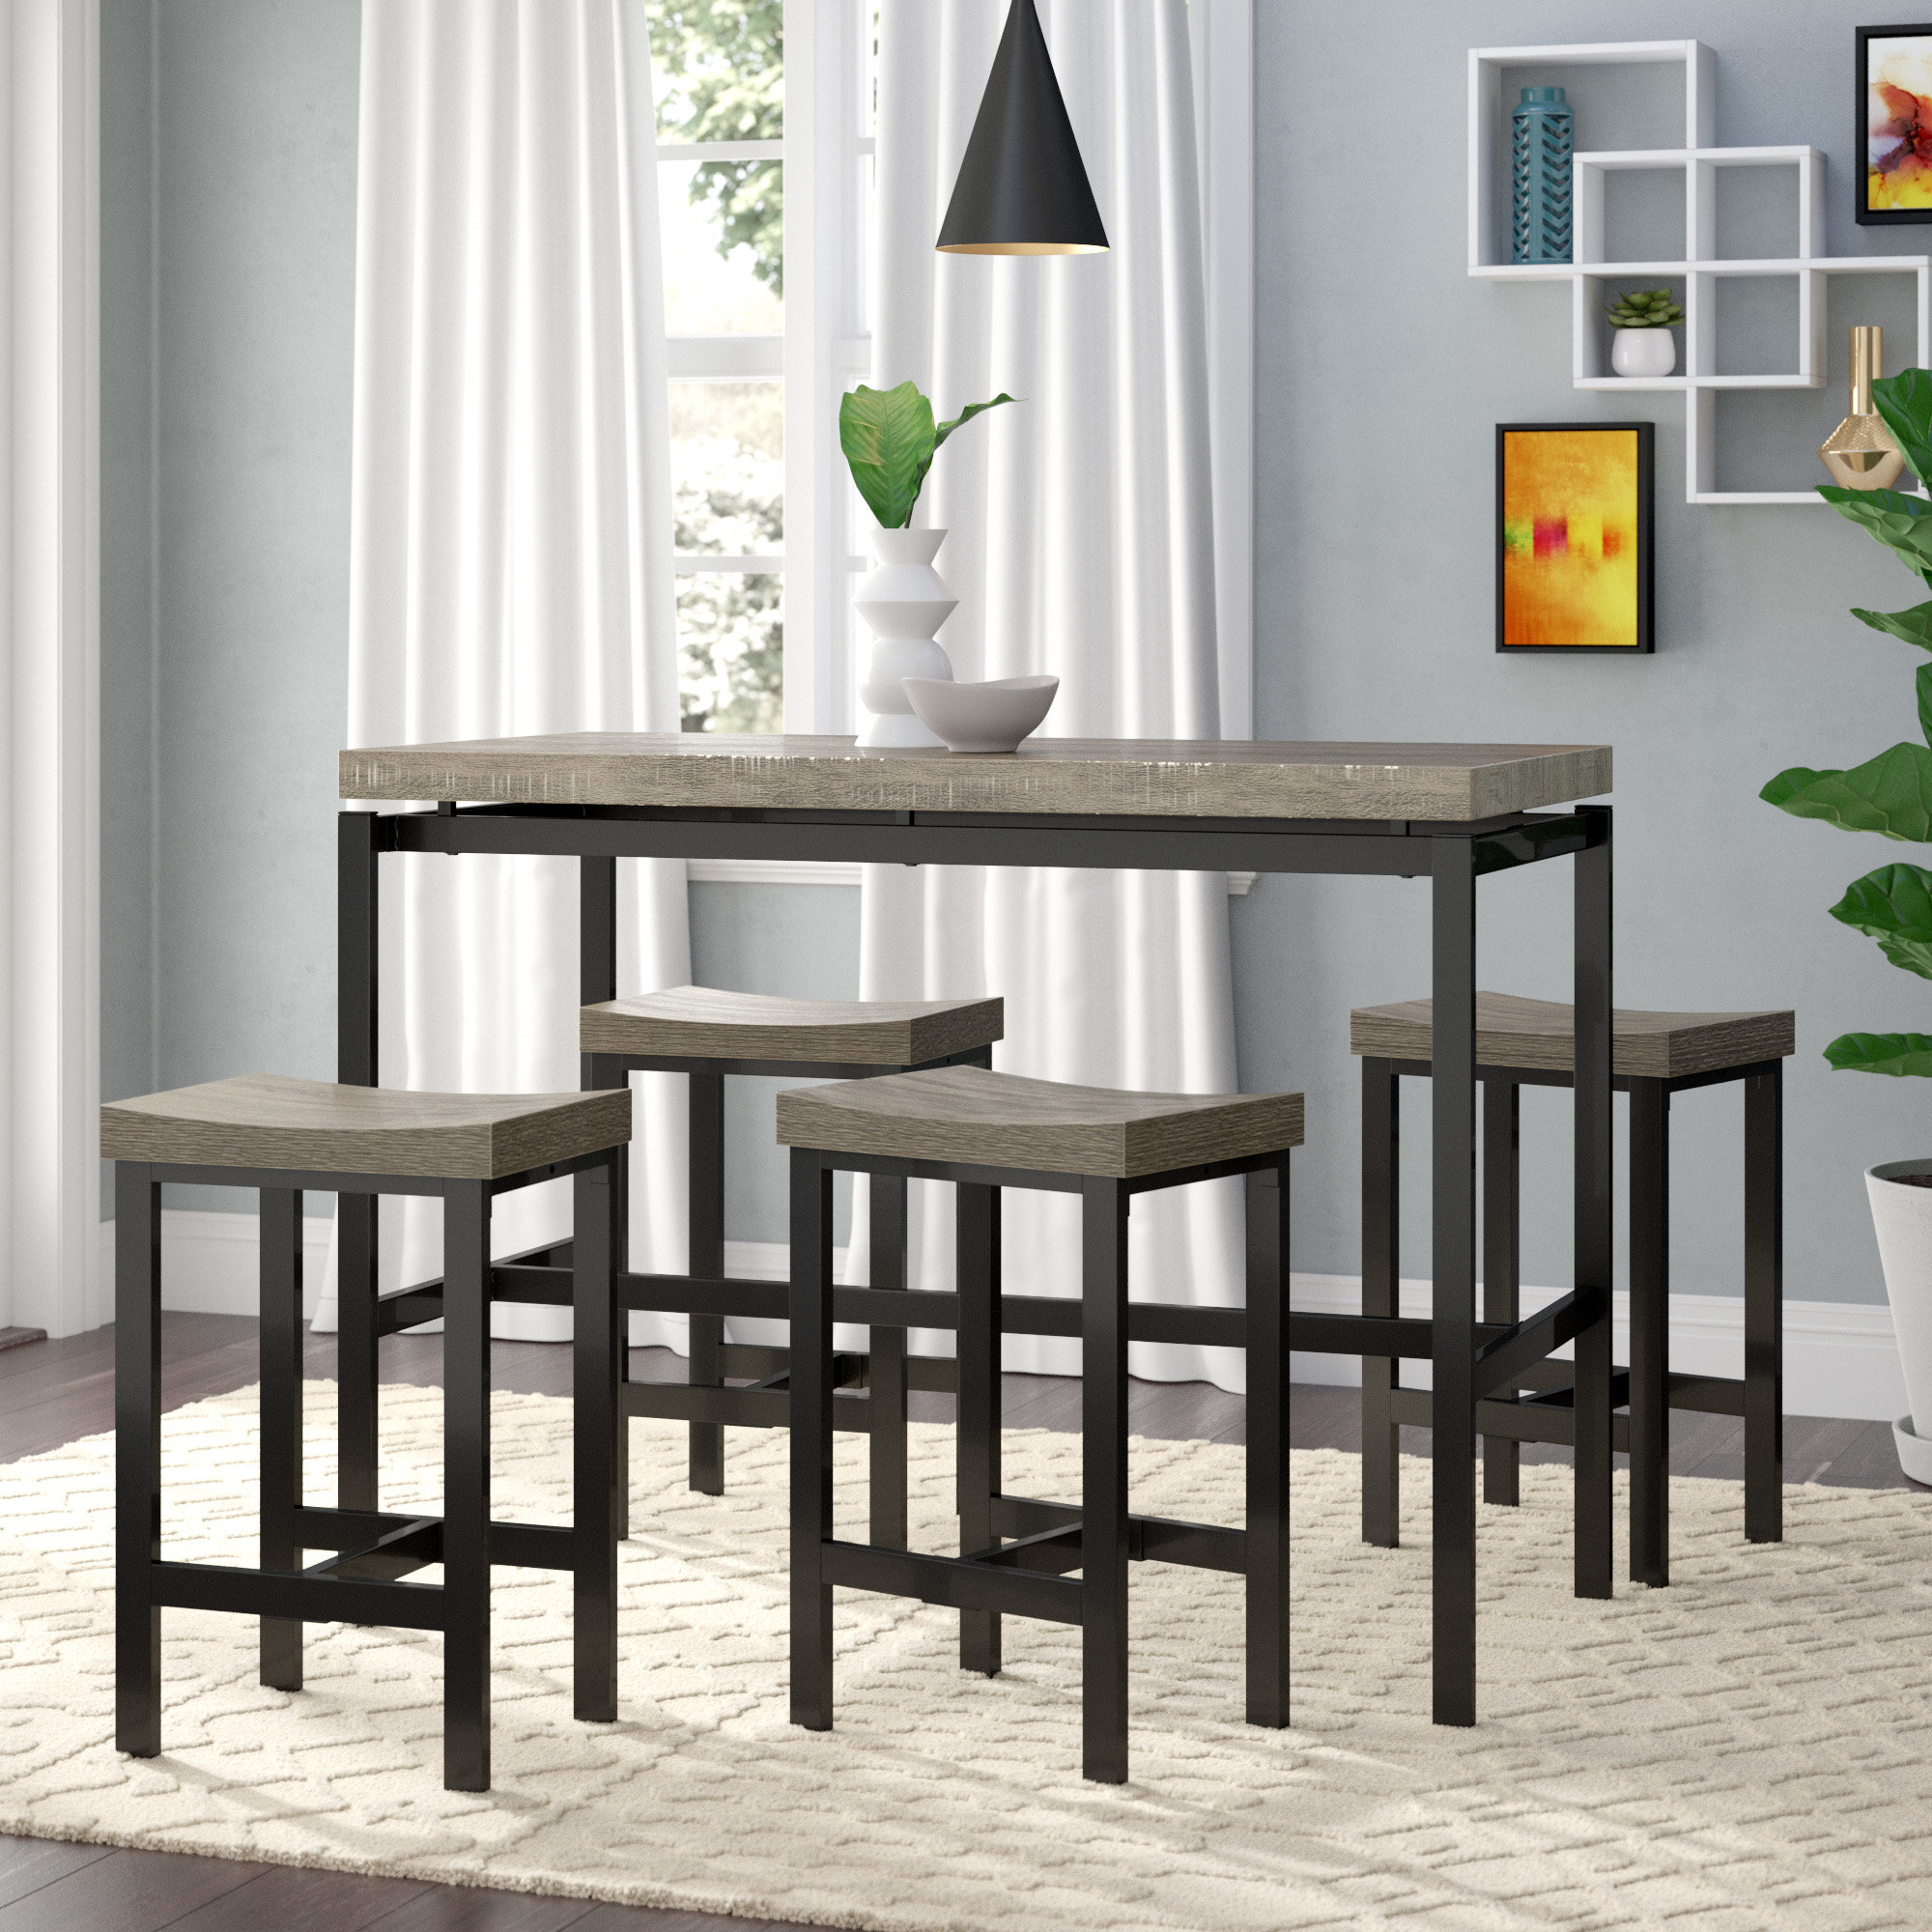 Beveridge 5 Piece Dining Set Pertaining To Most Recently Released Denzel 5 Piece Counter Height Breakfast Nook Dining Sets (Image 3 of 20)